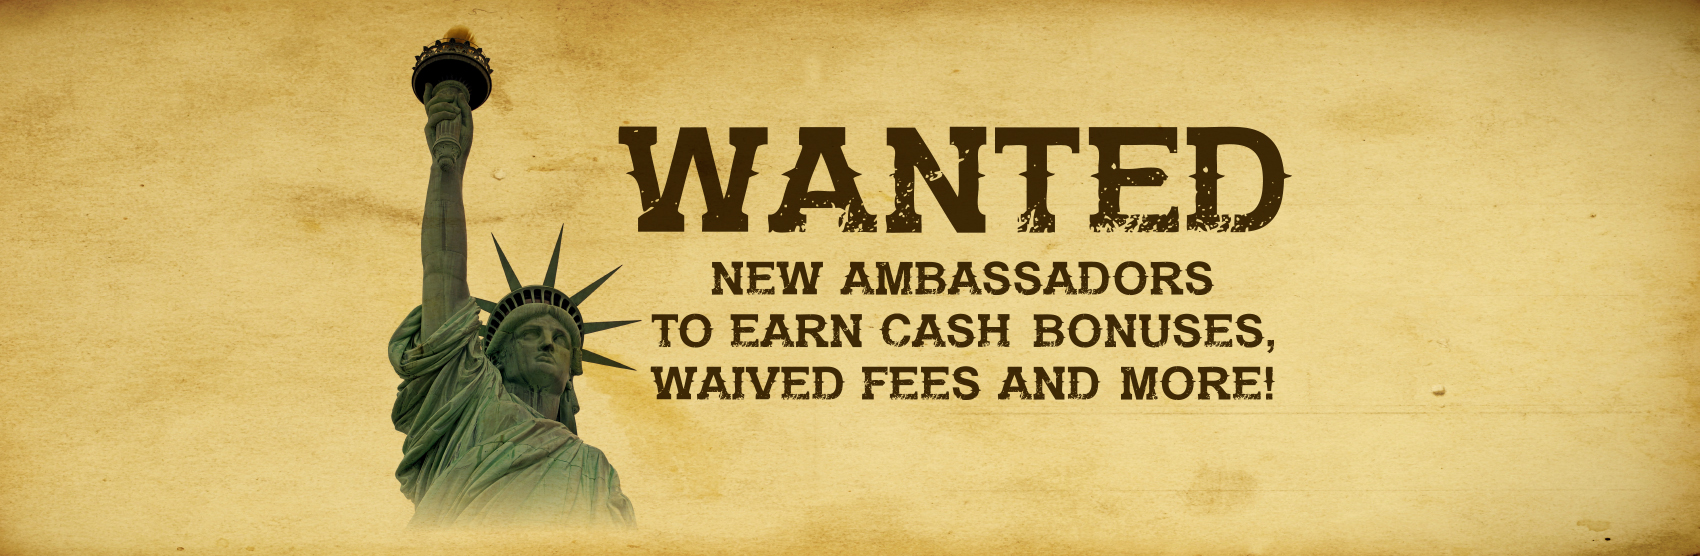 Illustration of Statue of Liberty with text promoting the Ambassador's Club